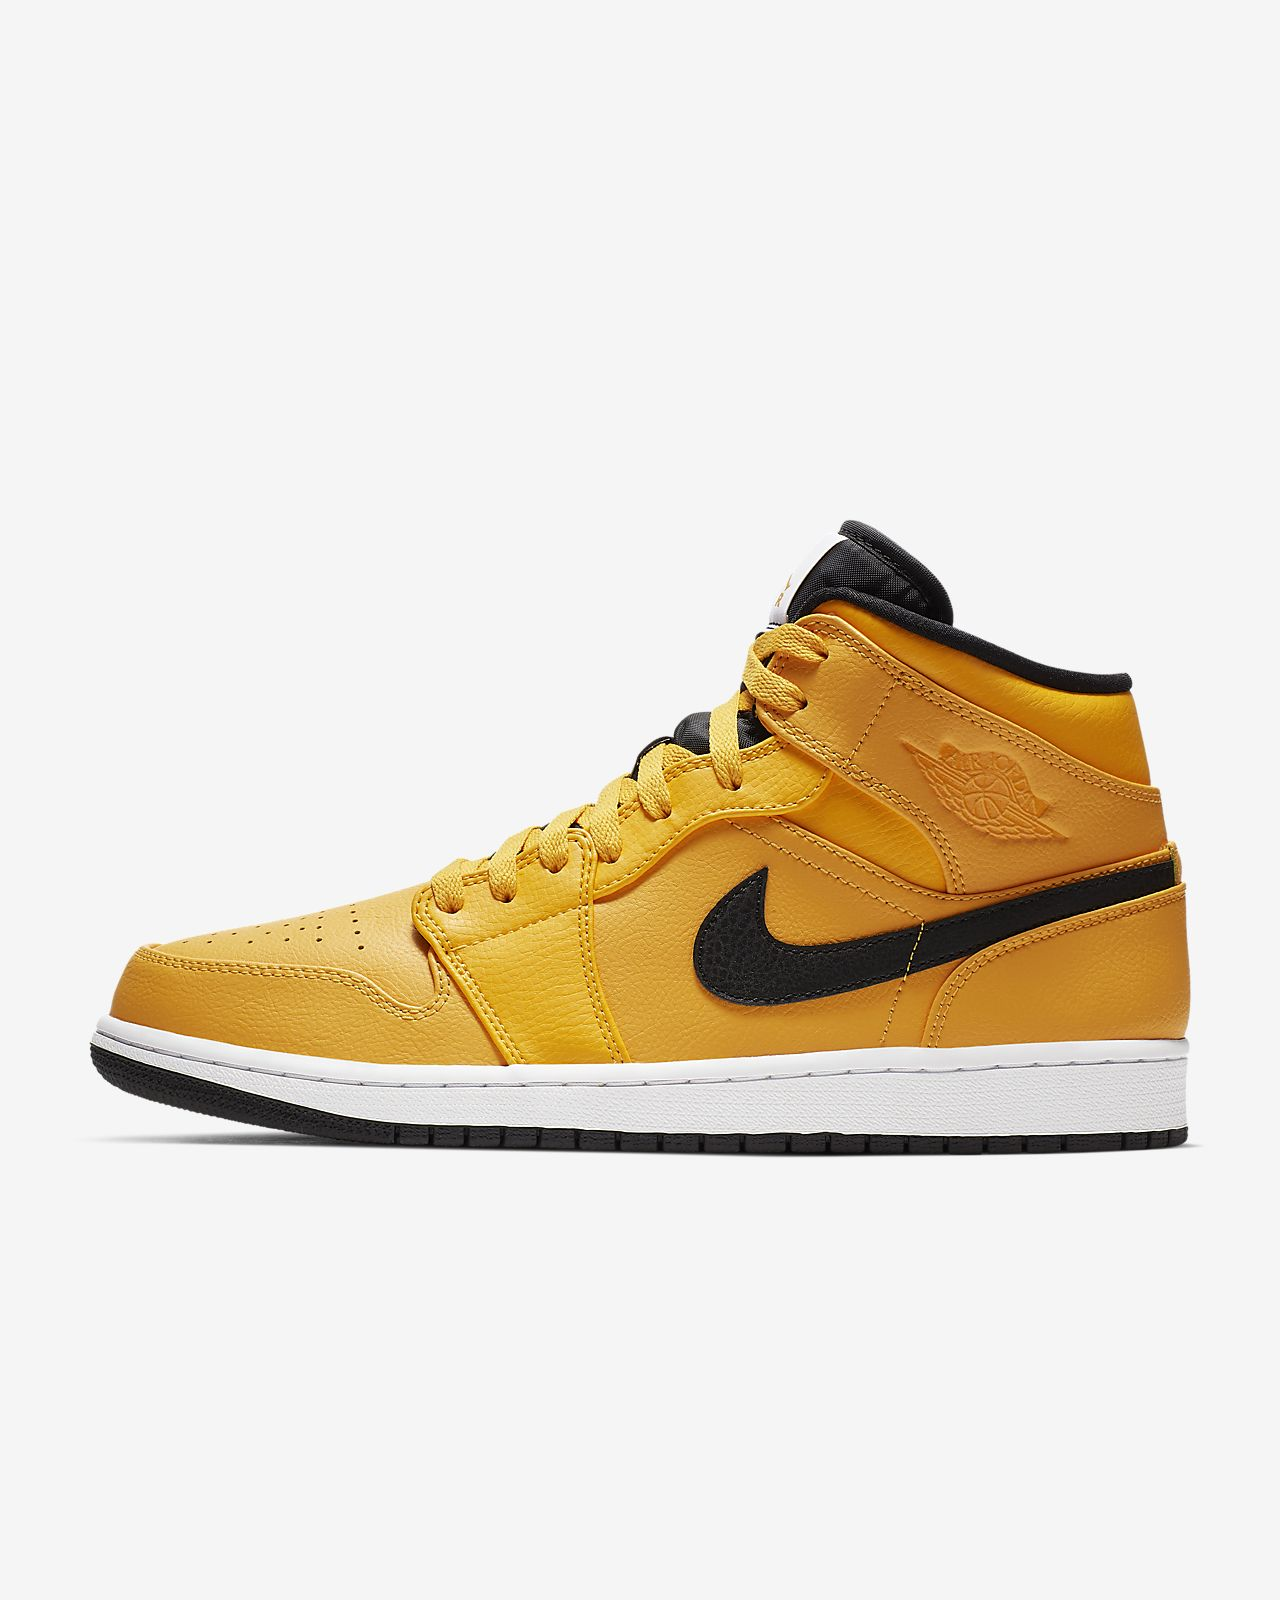 6997a18a3ac Air Jordan 1 Mid Men's Shoe. Nike.com